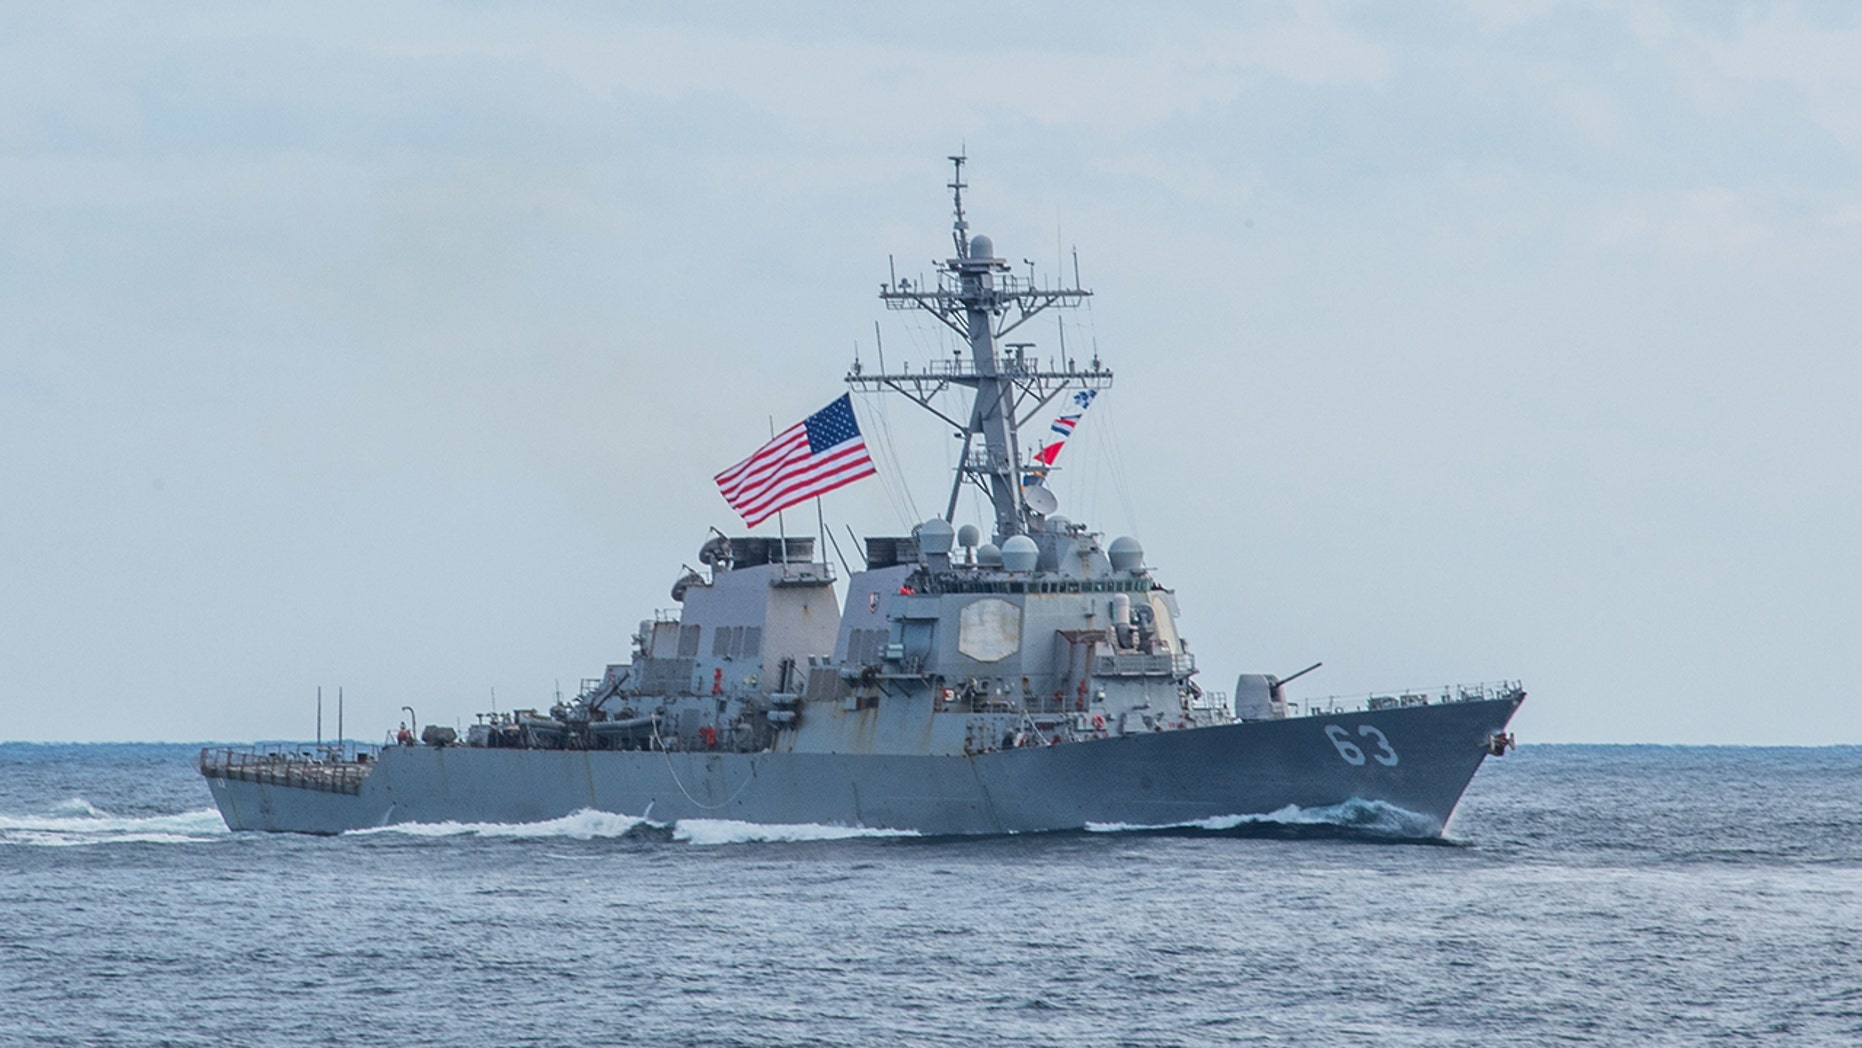 The Arleigh Burke-class guided-missile destroyer USS Stethem (DDG 63), seen here during an exercise in the Western Pacific, passed through the Taiwan Strait on Monday.